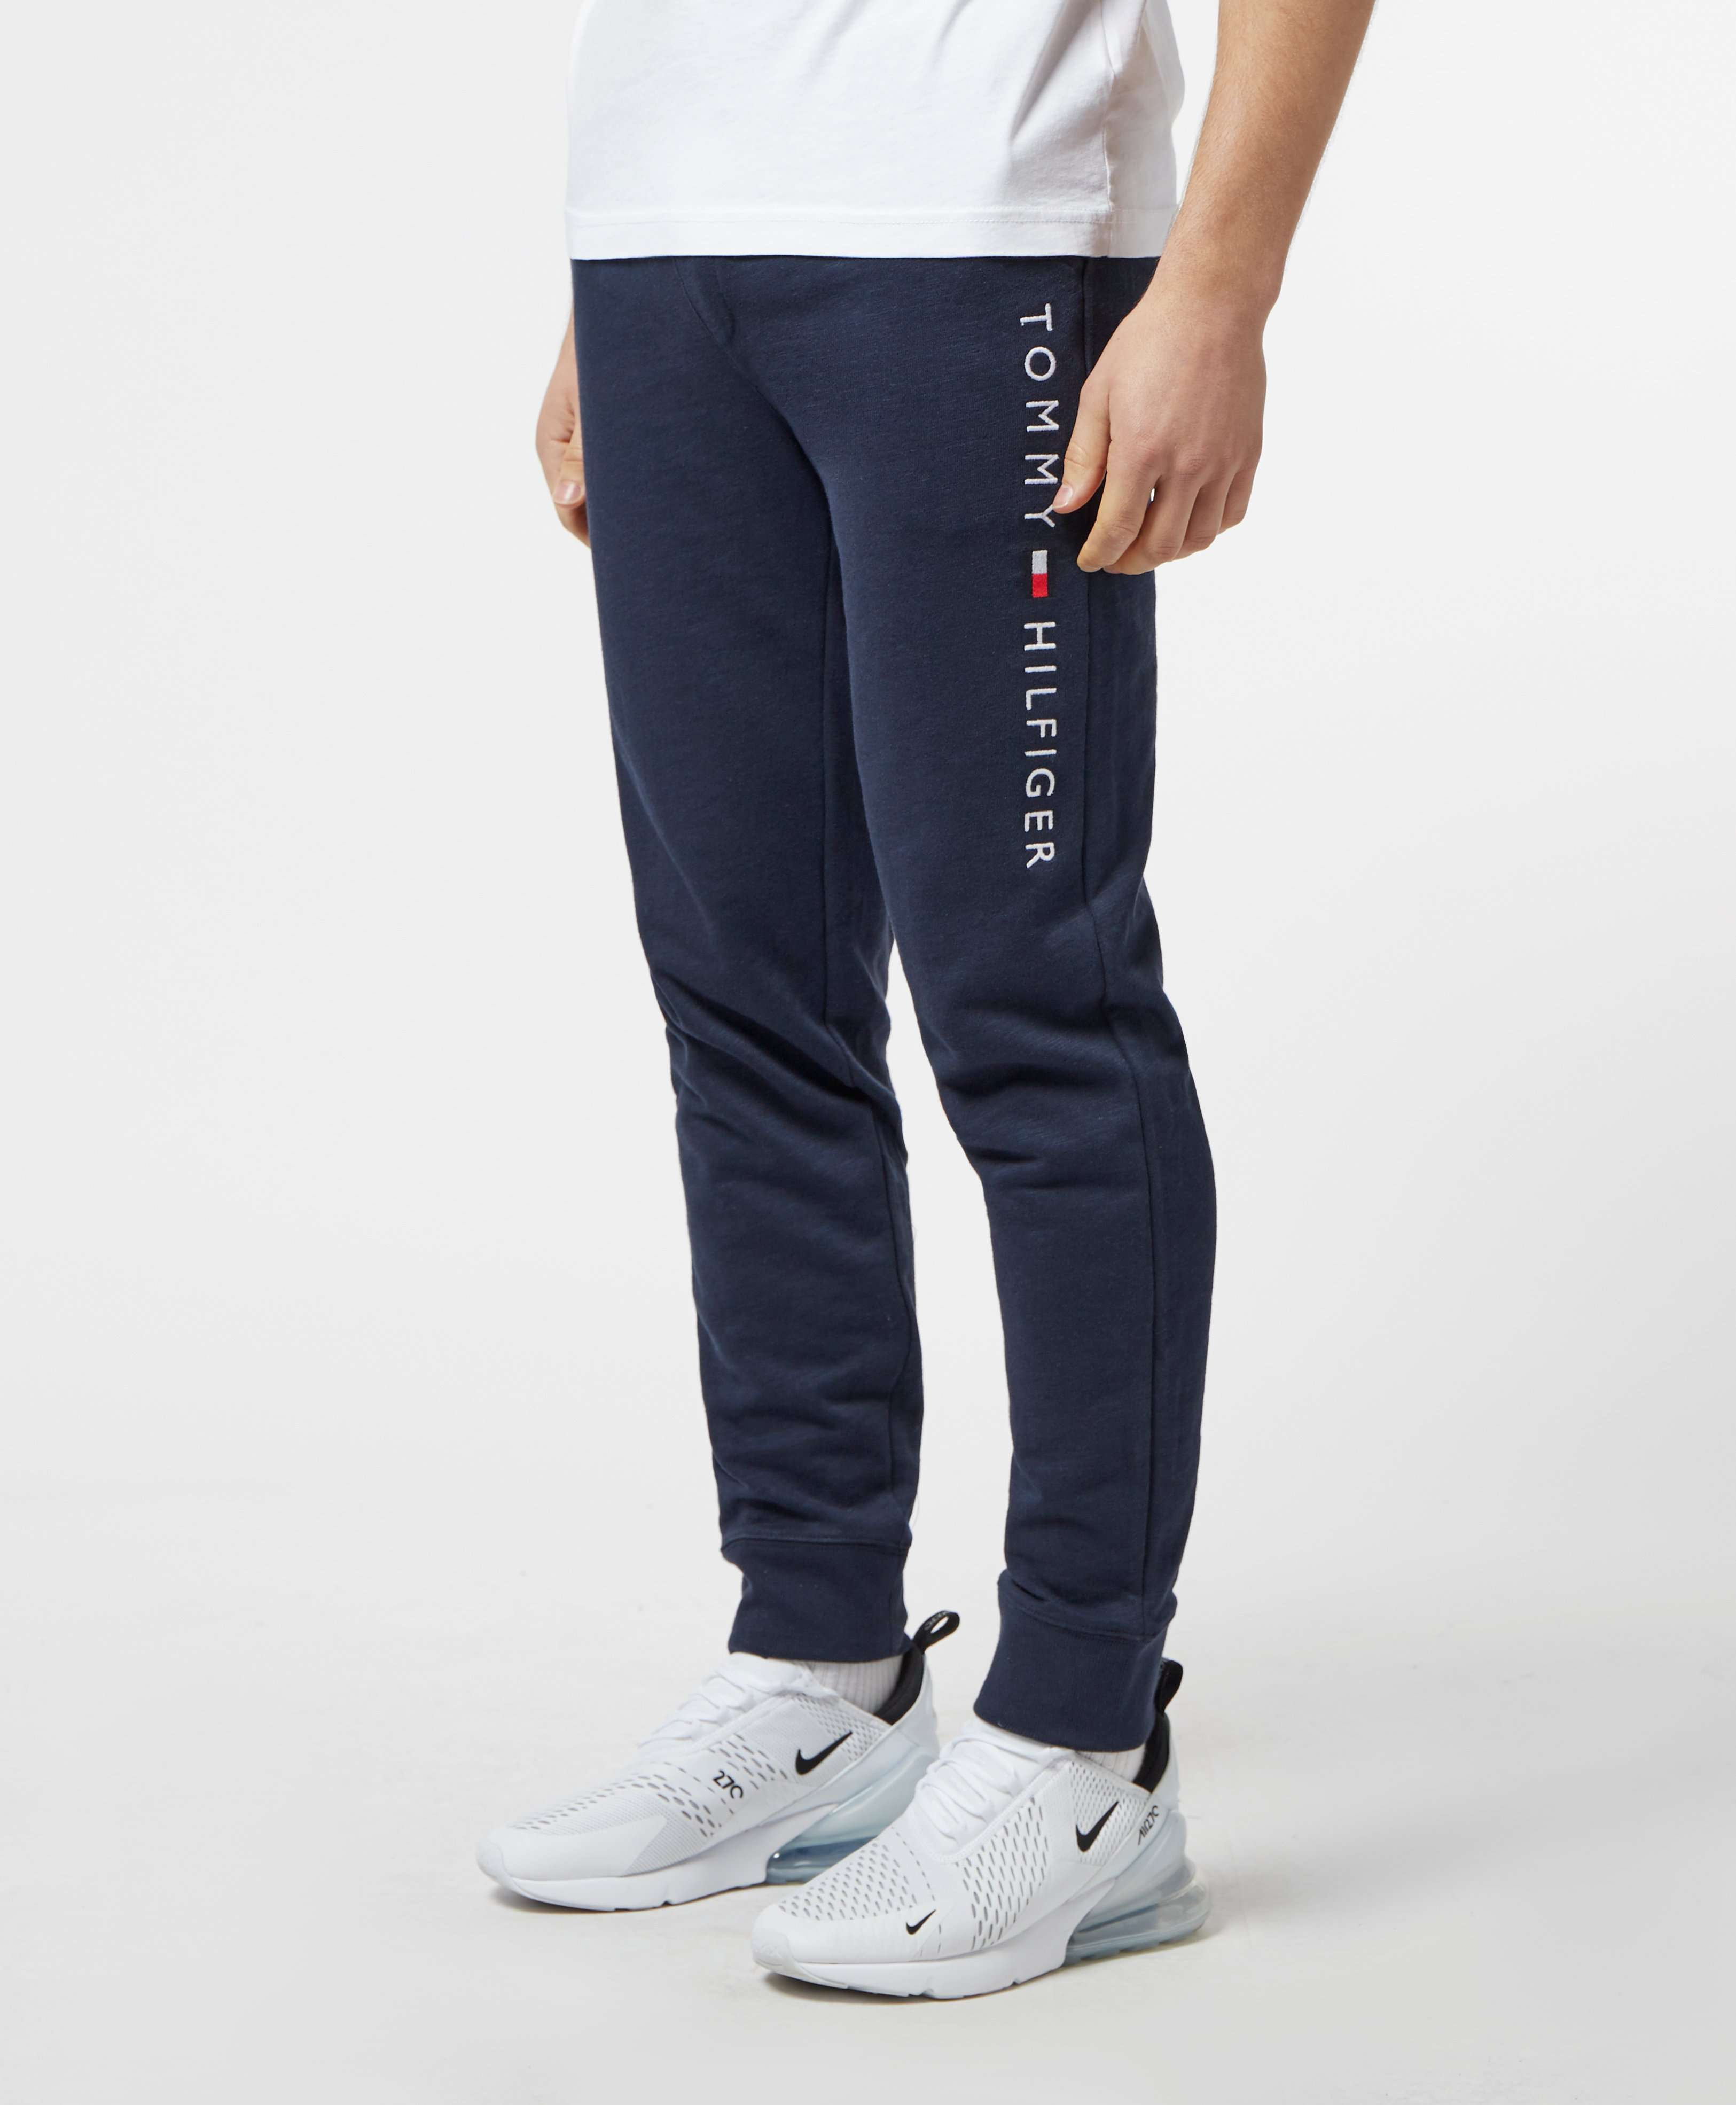 Tommy Hilfiger Embroidered Logo Cuffed Fleece Pants